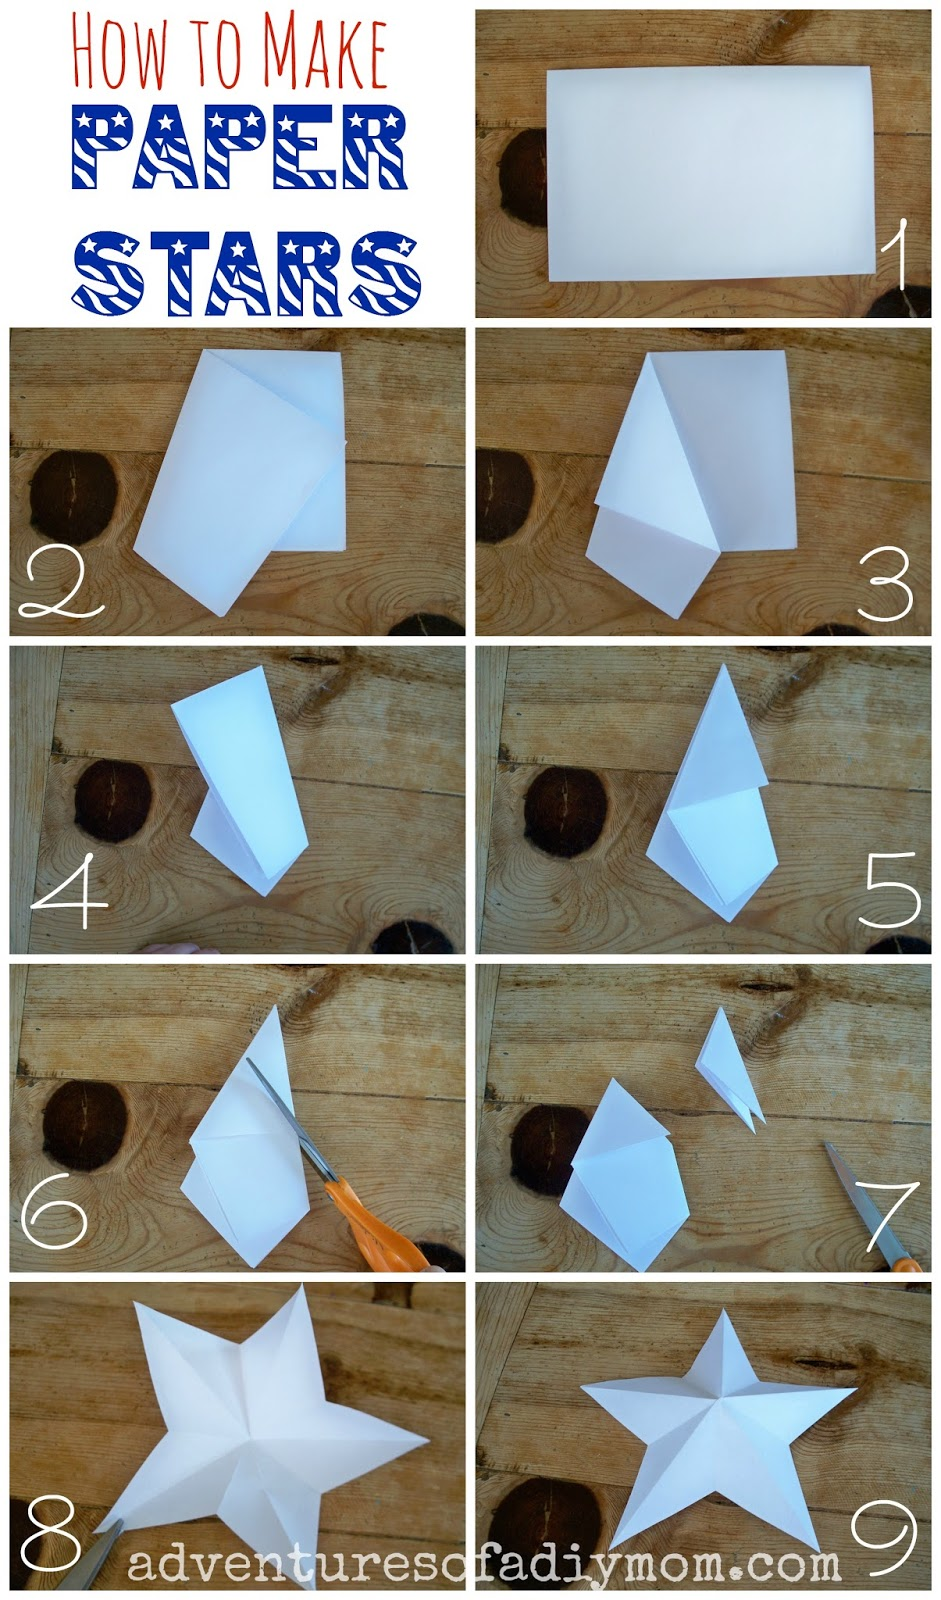 how to make paper star easy step by step